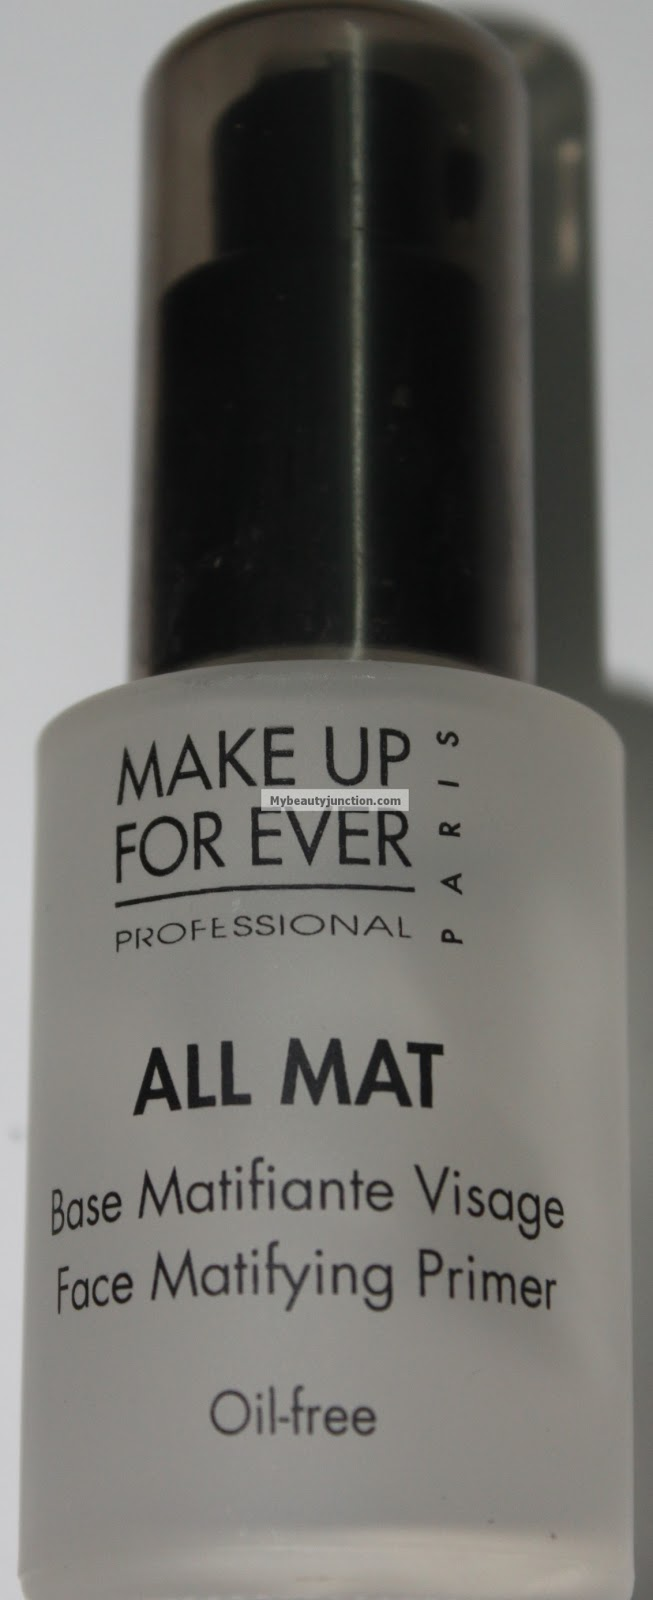 Review of Make Up For Ever - MUFE - All Mat primer